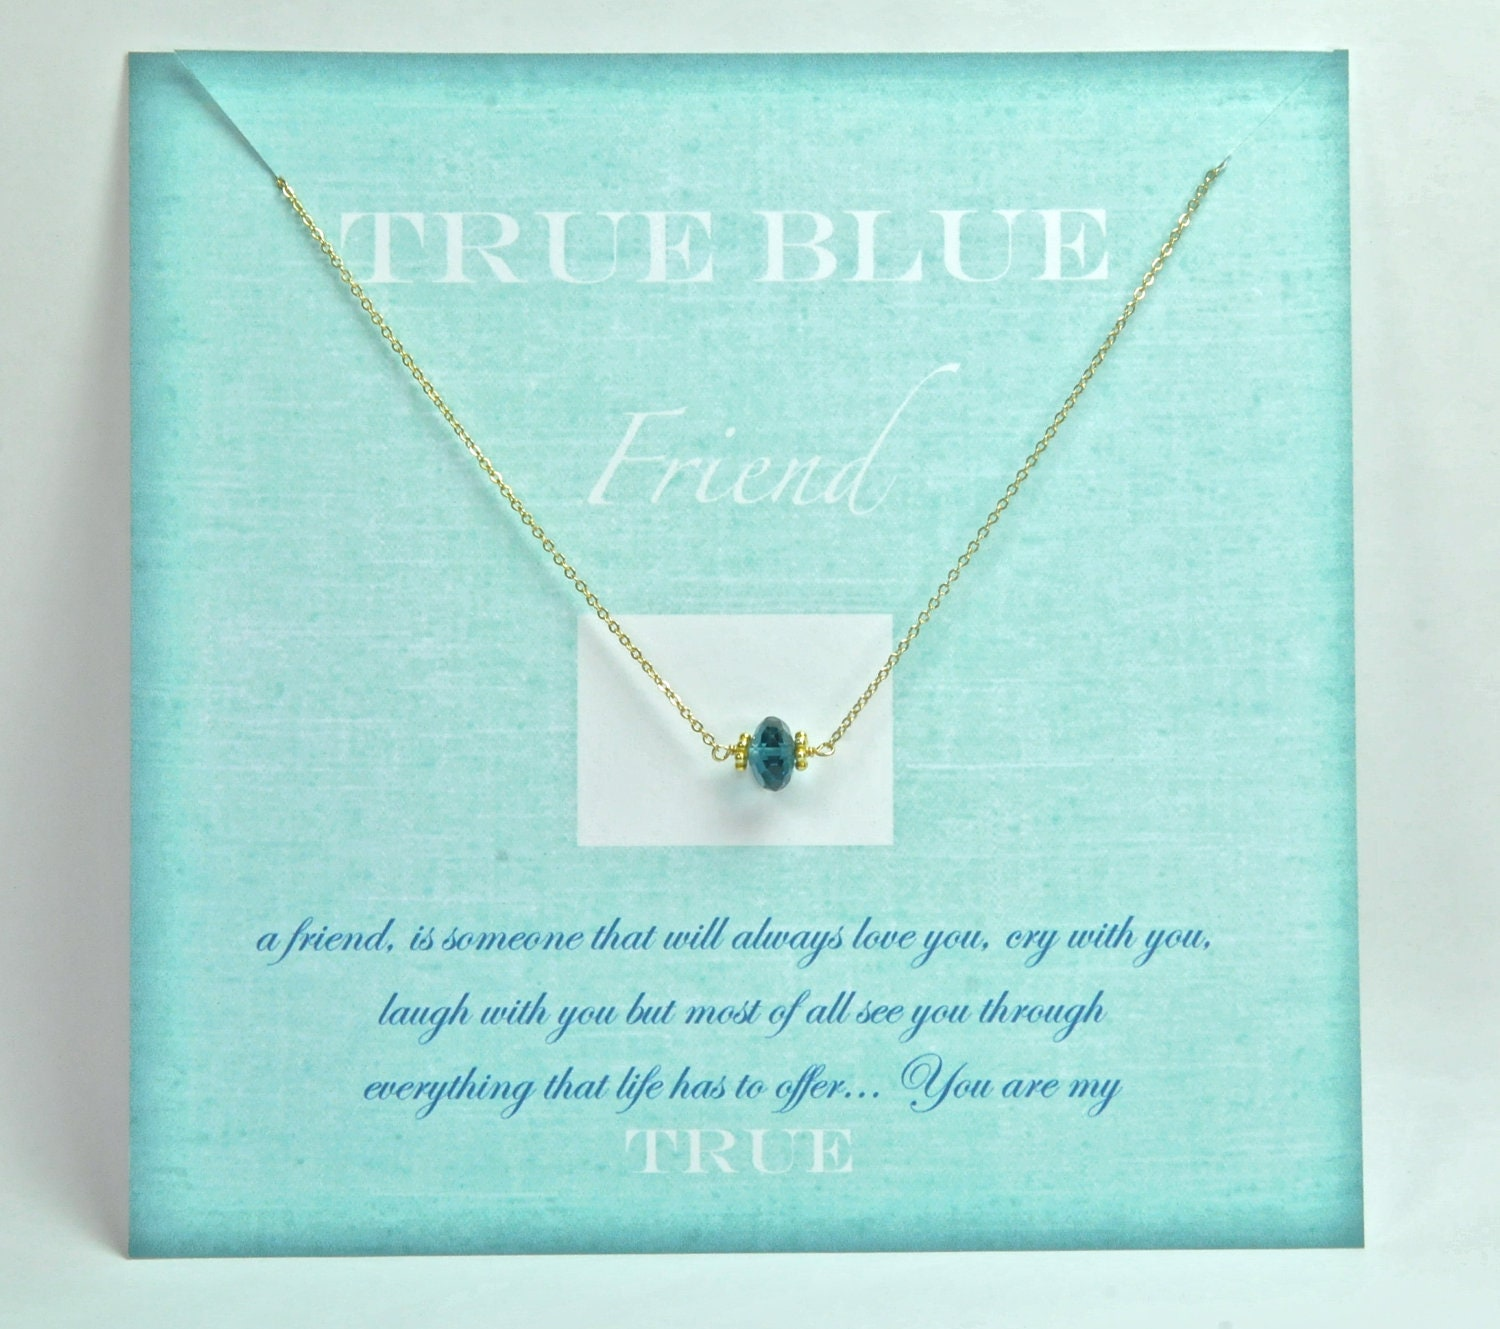 Wedding Gifts For Good Friends : Wedding Gifts Ideas For Friends Blue friend gift ideas/